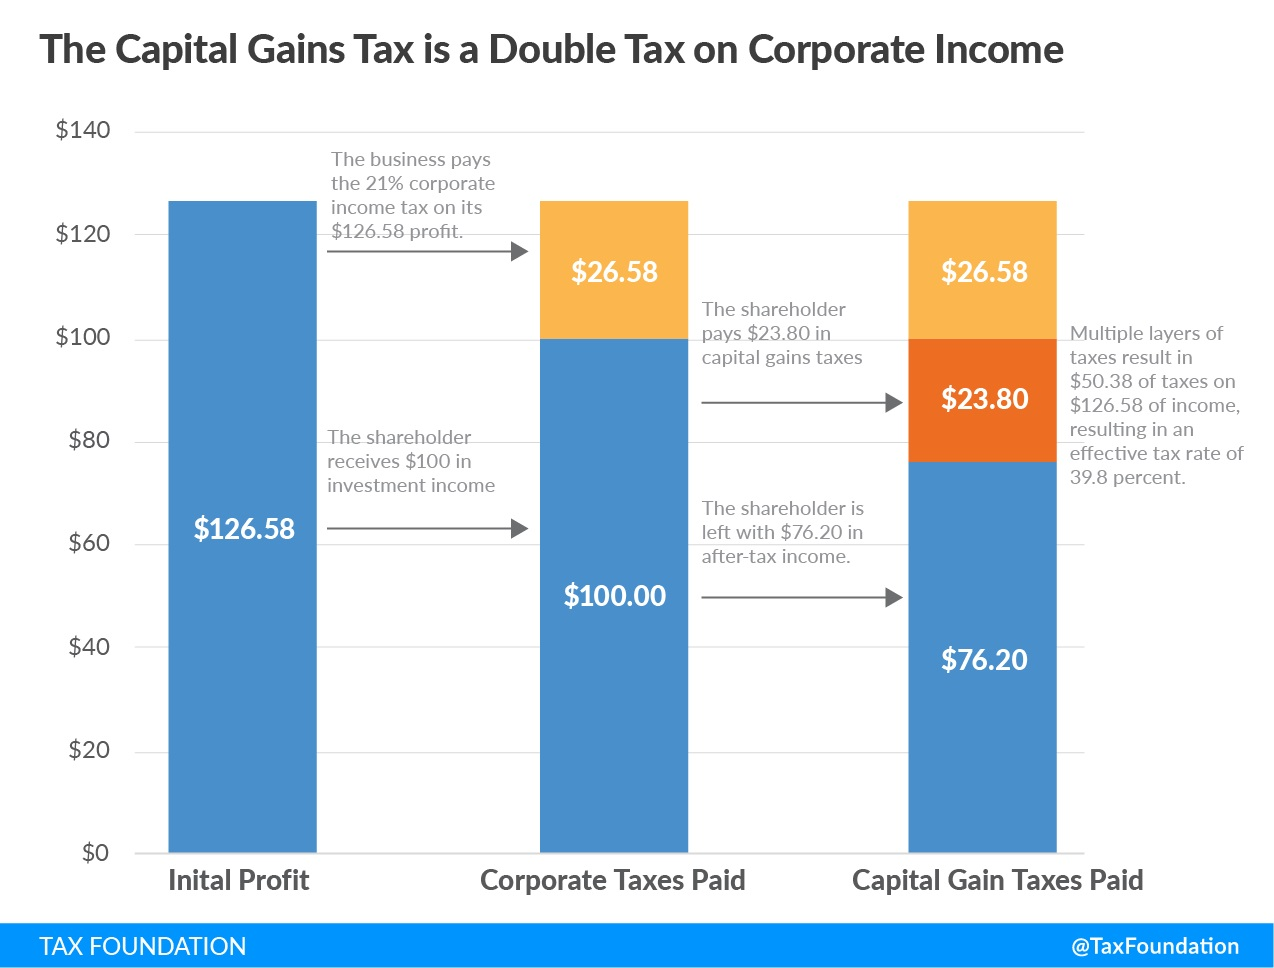 Bob Dylan and the Capital Gains Tax